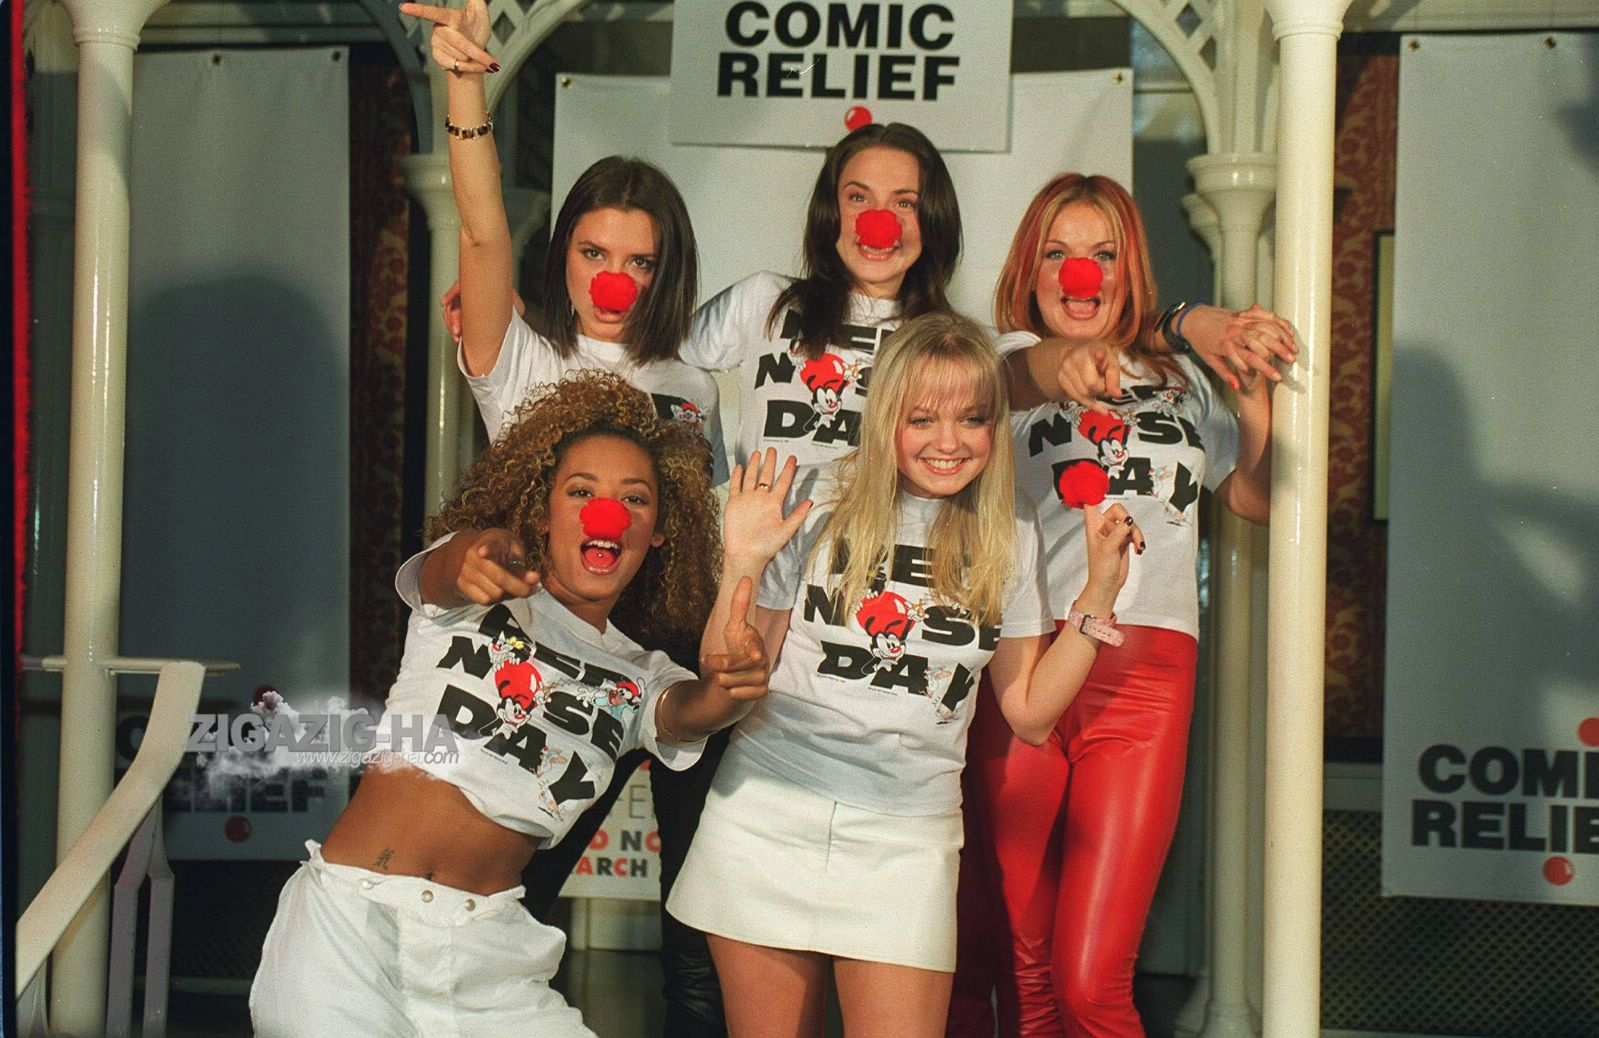 Girls candids appearances hq large 1997 1997 feb 6th spice girls at